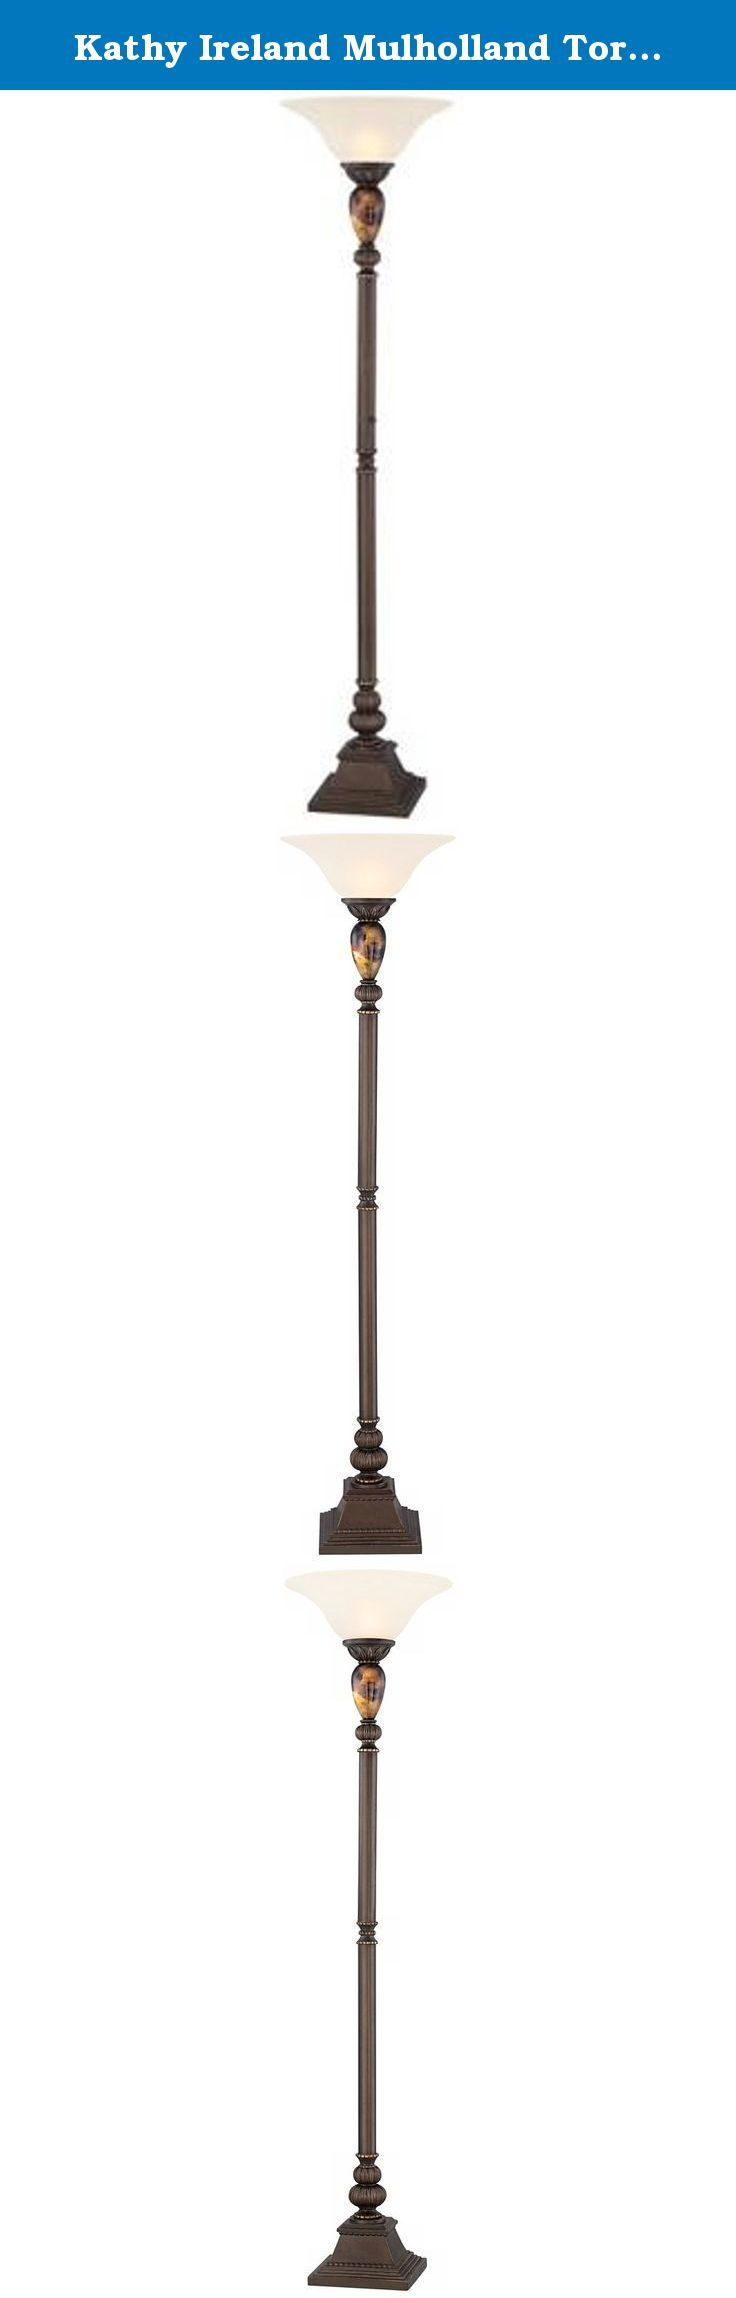 "Kathy Ireland Mulholland Torchiere Floor Lamp. Ideal for general room illumination, this Kathy Ireland design is the perfect marriage of form and function. It features traditional styling with a frosted glass shade and tortoise shell glass font. - Kathy Ireland Home Collection. - Tortoise shell glass font. - Cast resin construction. - Frosted glass. - Foot dimmer switch. - Takes one 150 watt bulb (not included). - 72"" high. - 18"" diameter glass shade. - 11"" square base (footprint)."